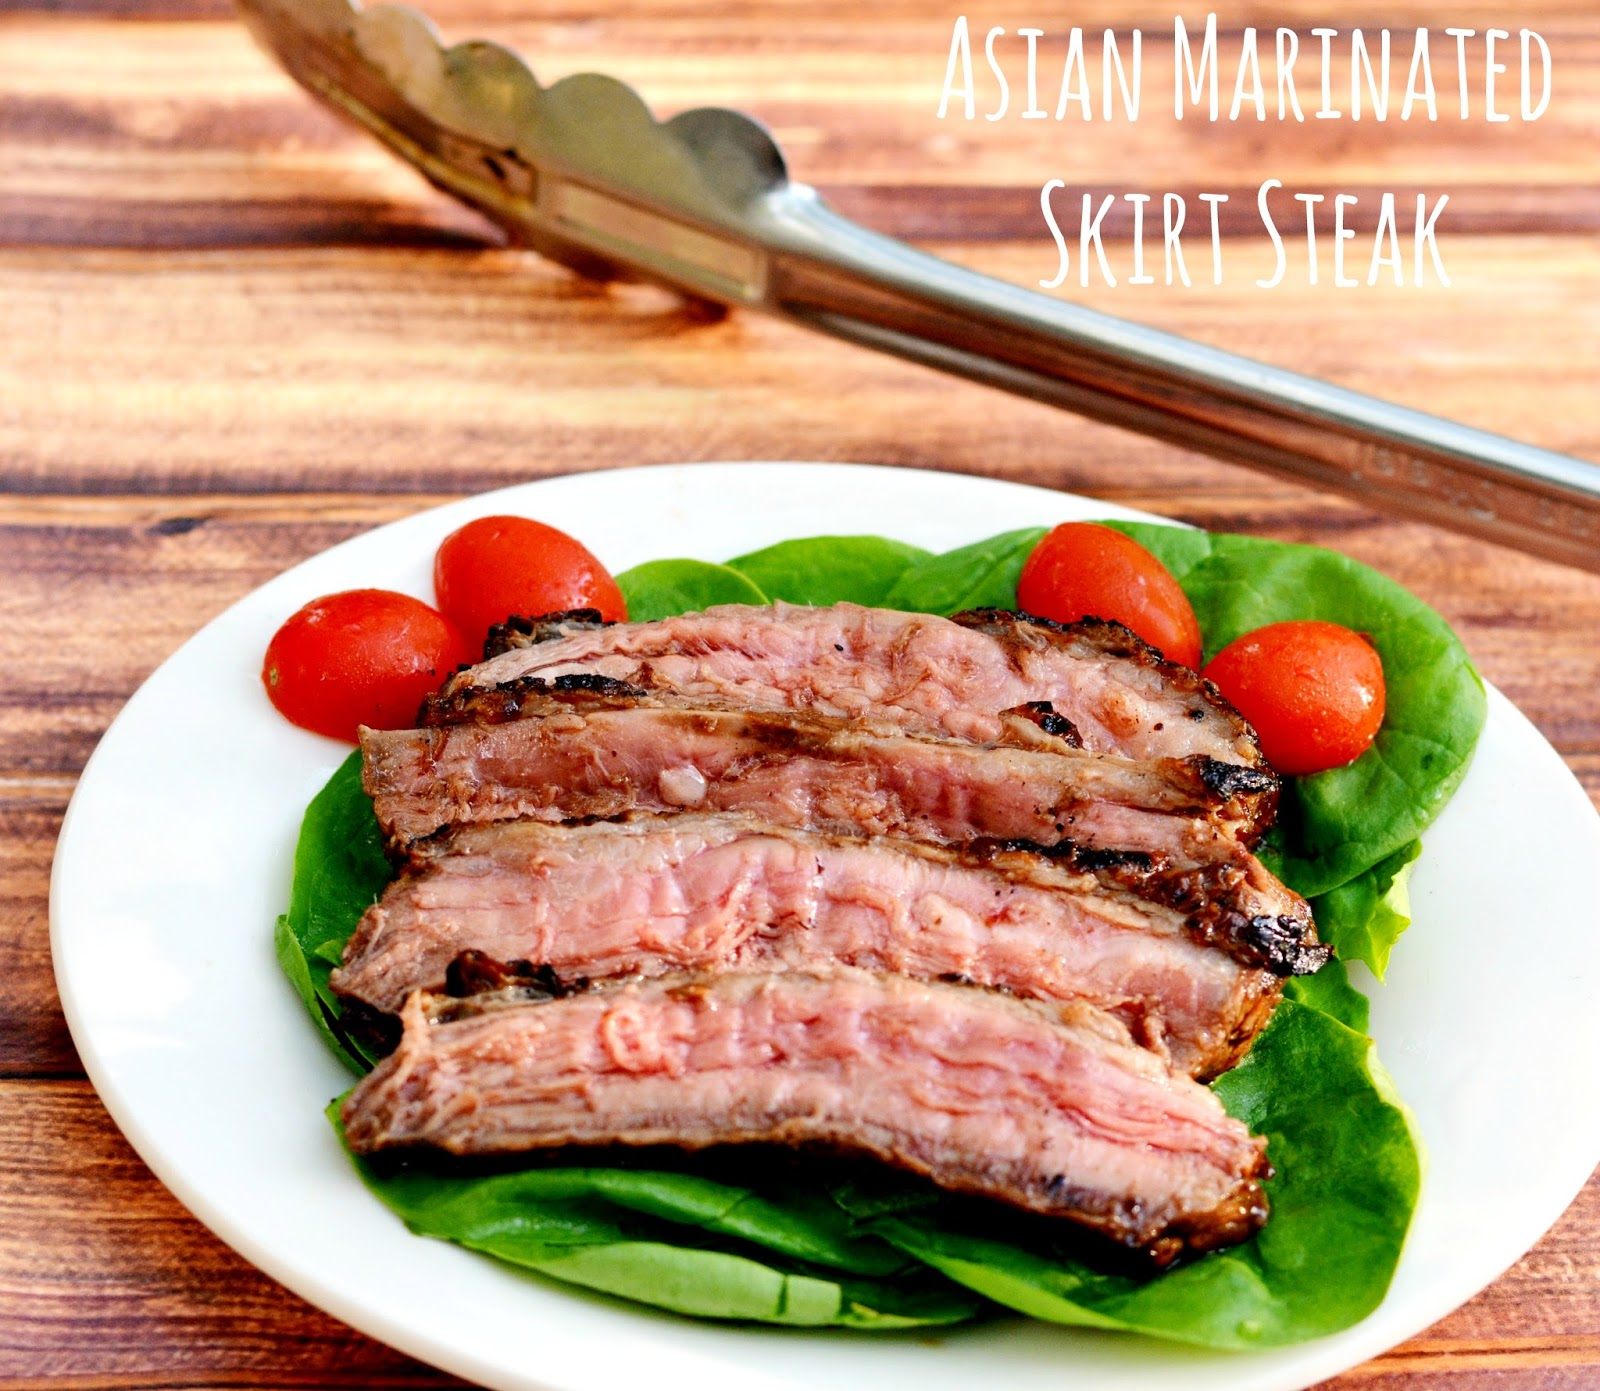 Asian Marinated Skirt Steak #Recipe